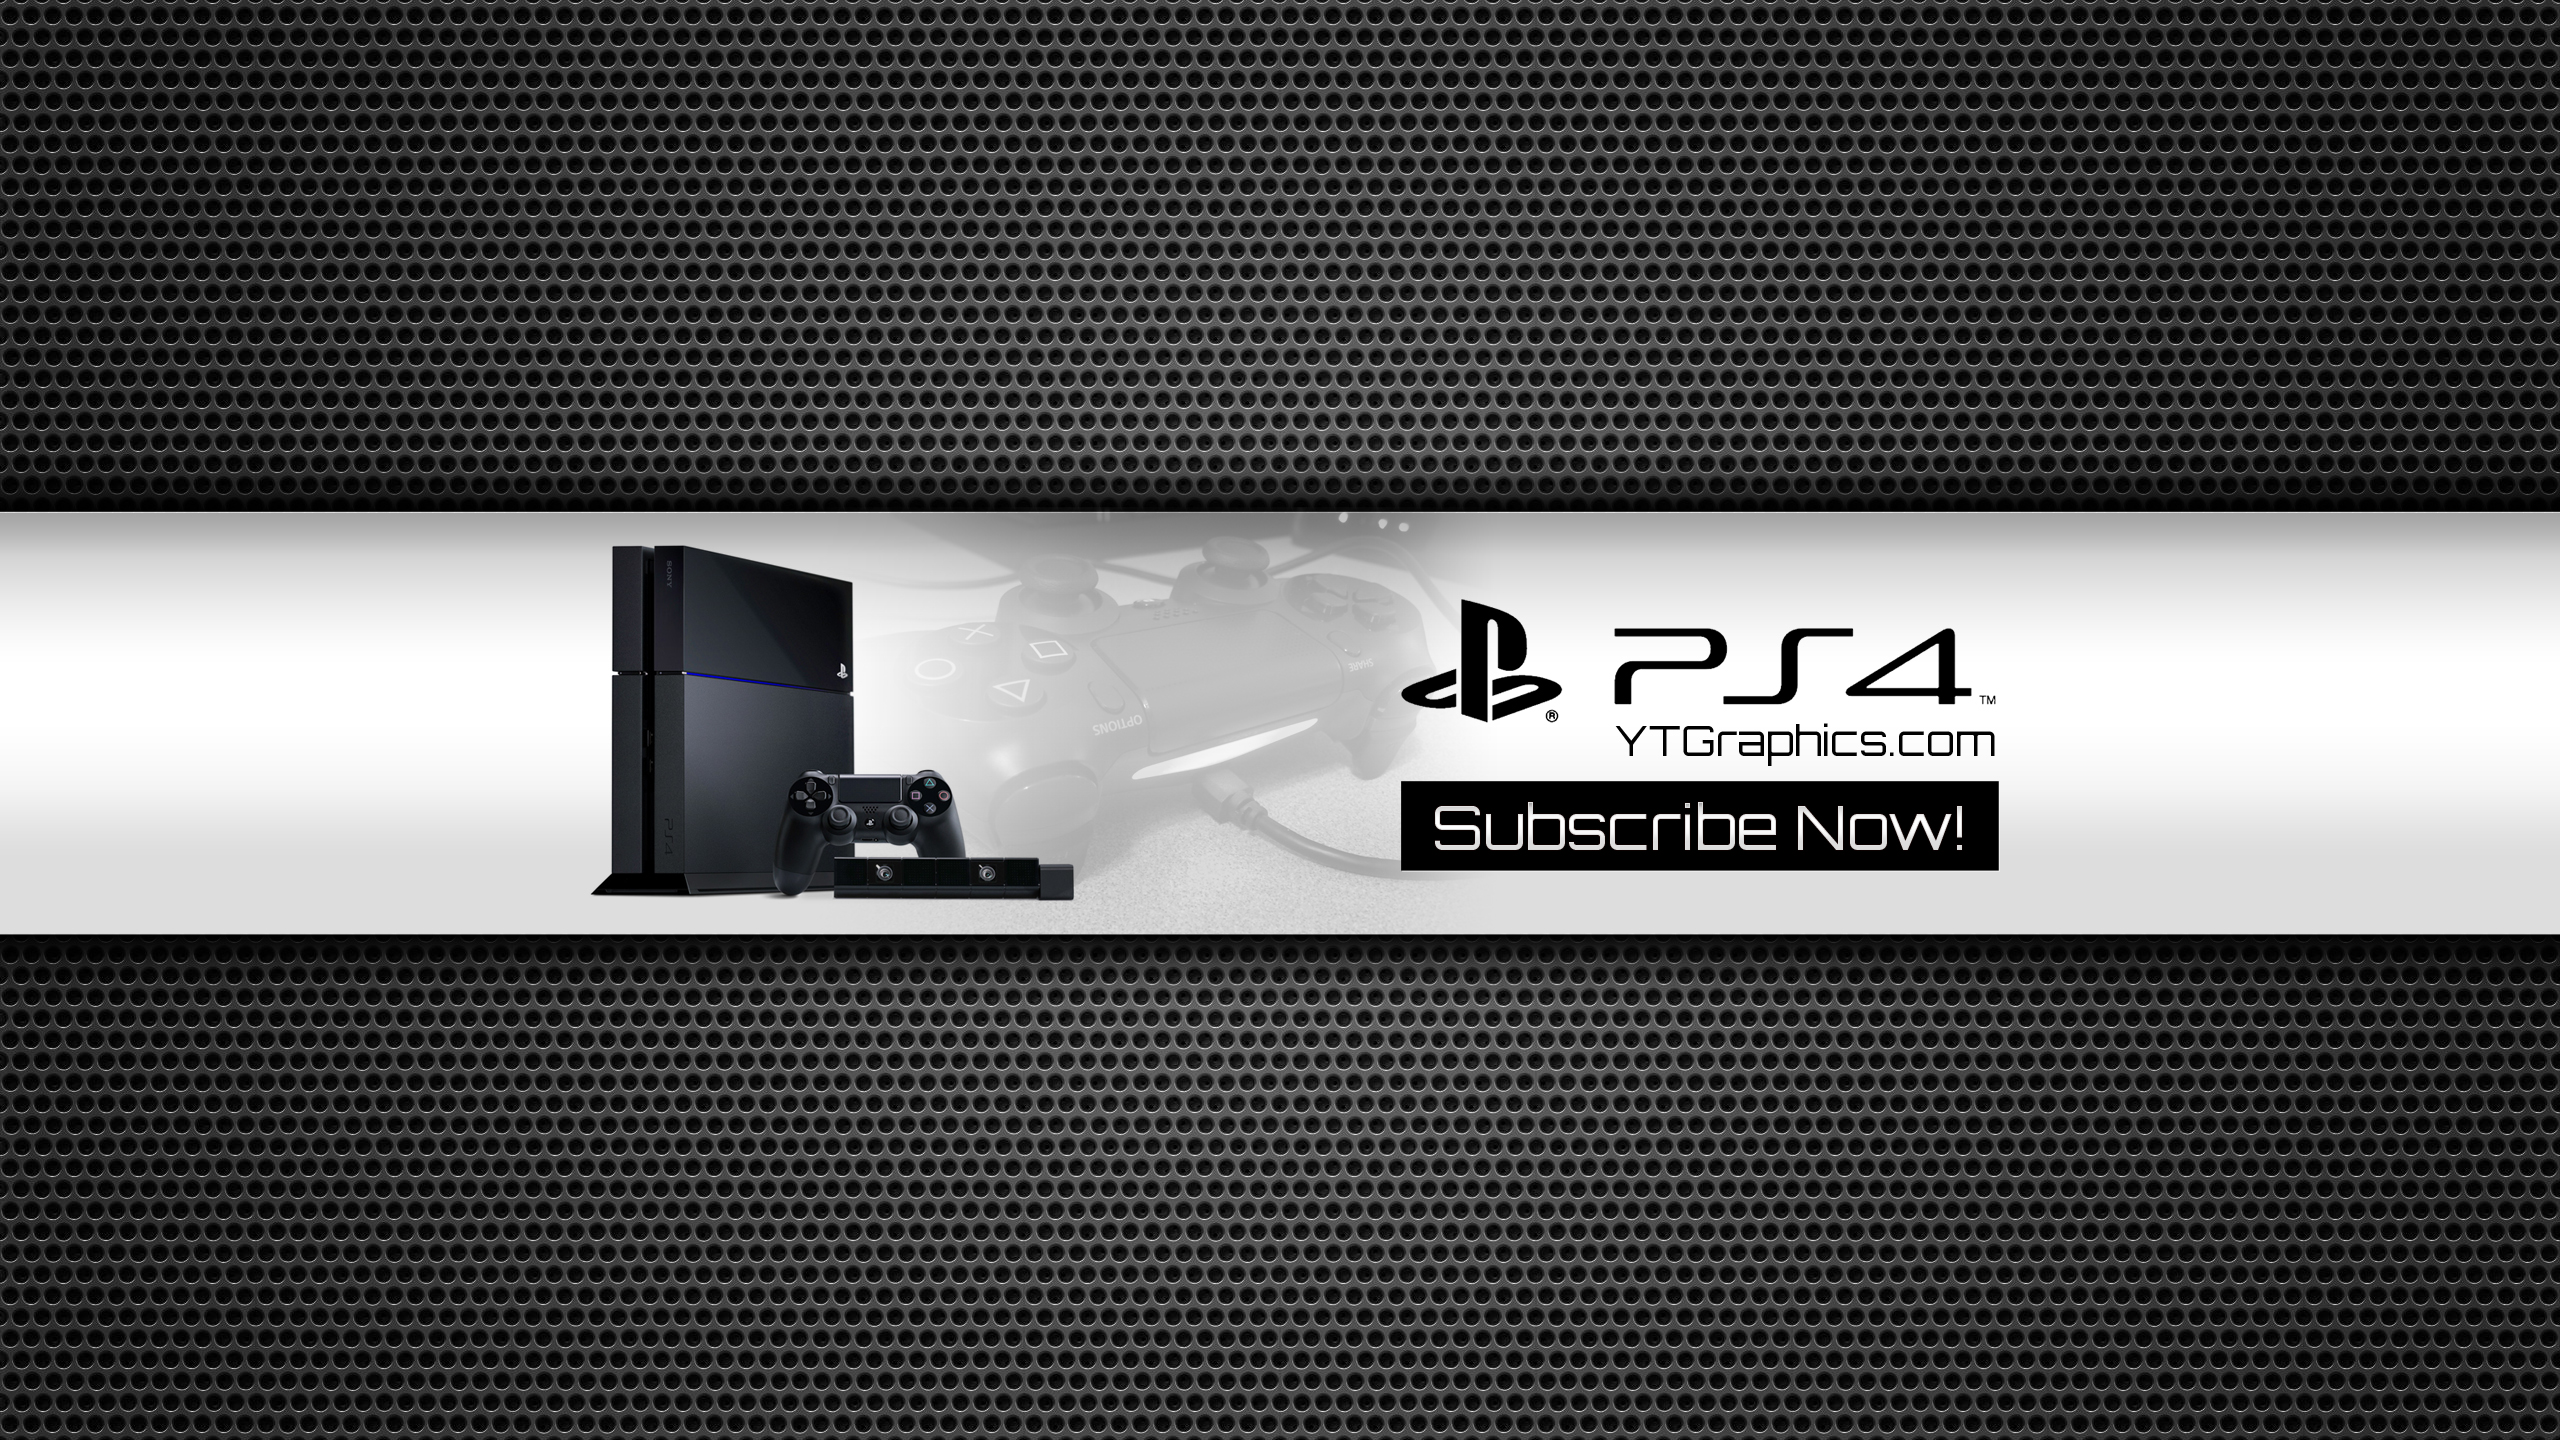 PS4 YouTube Channel Art Banner